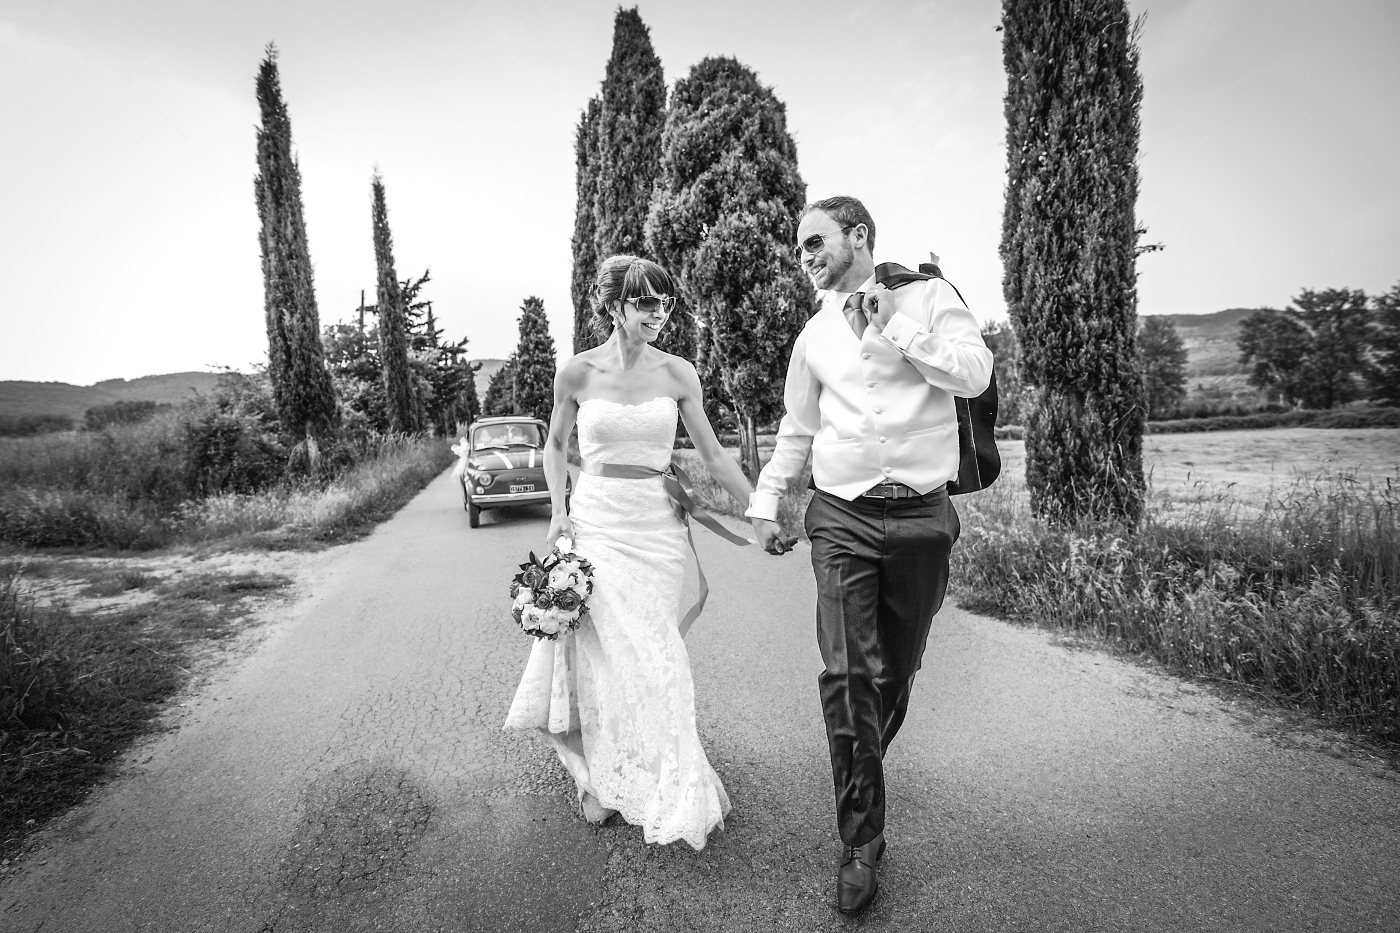 wedding photo villa baroncino_18.jpg